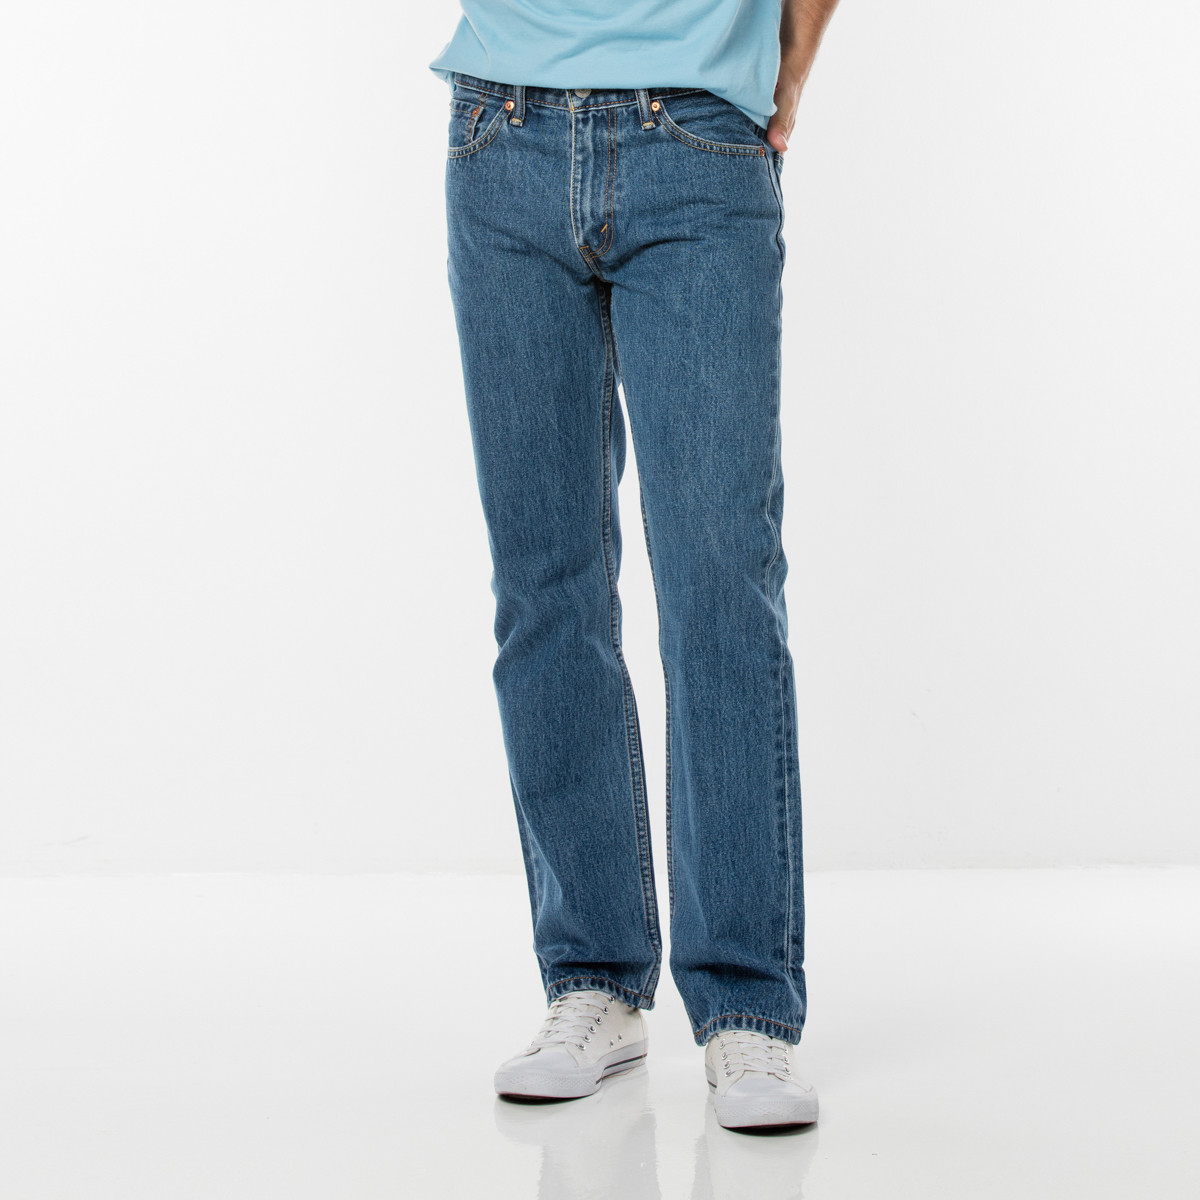 Levi's 514 Straight Fit Jeans AMA Rinsey Golders Toowoomba